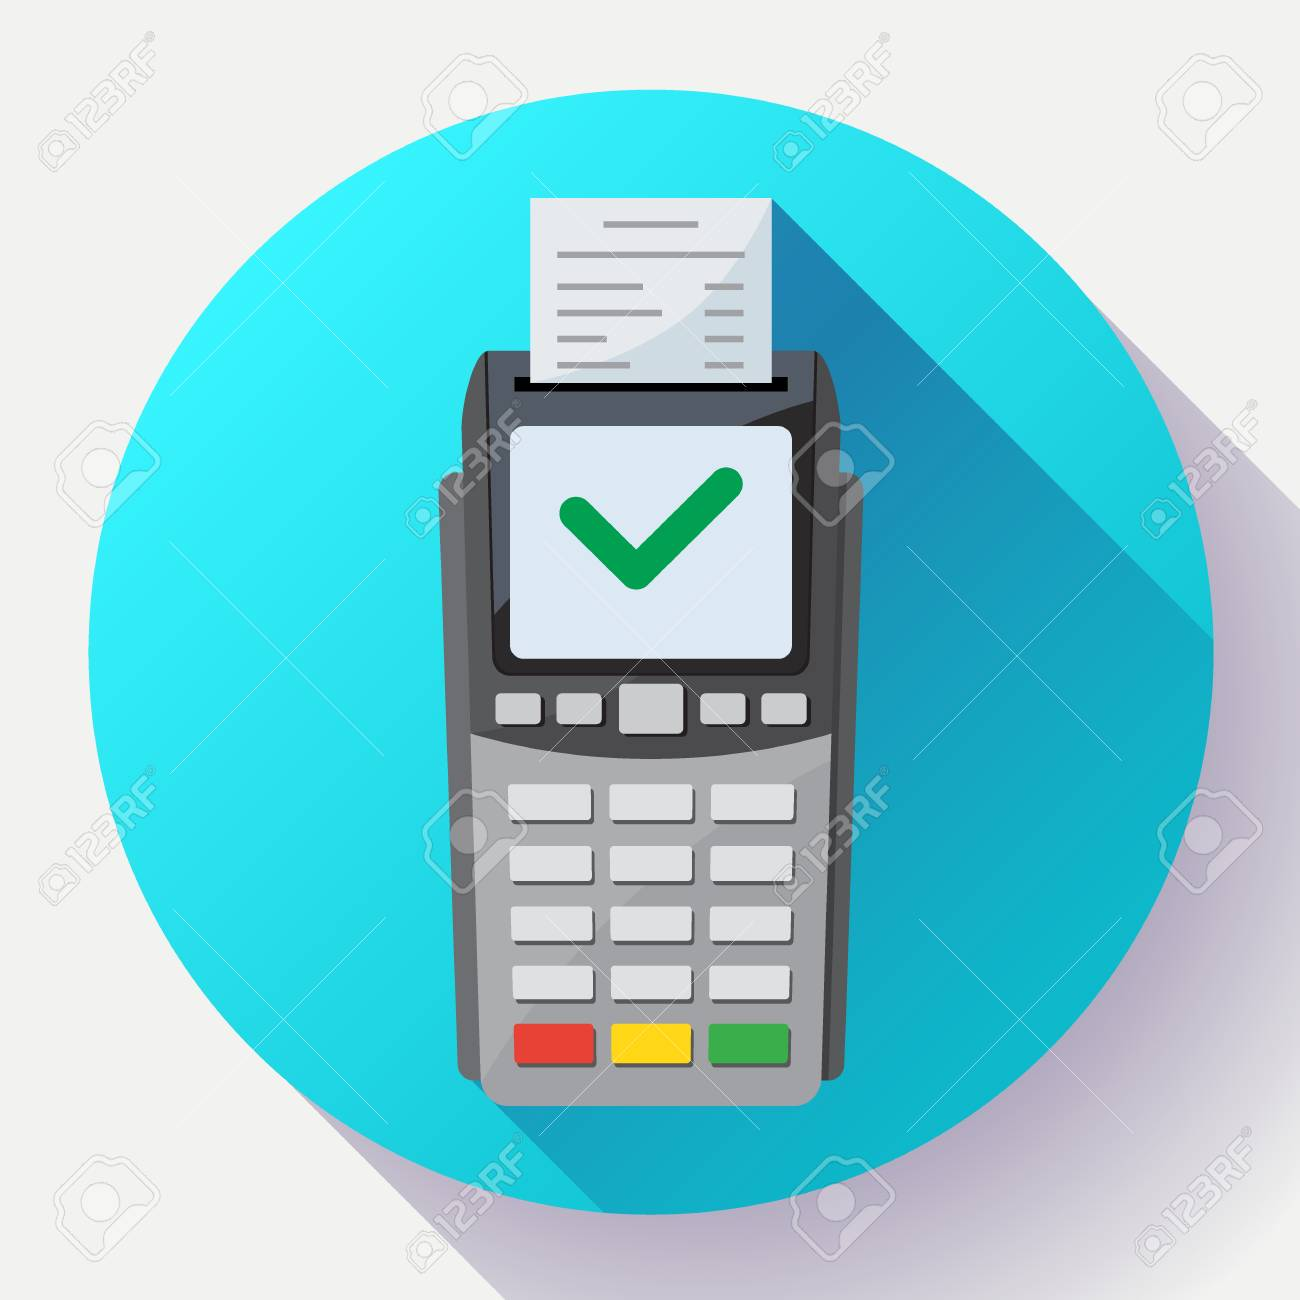 Payment machine and credit card terminal icon in flat style.